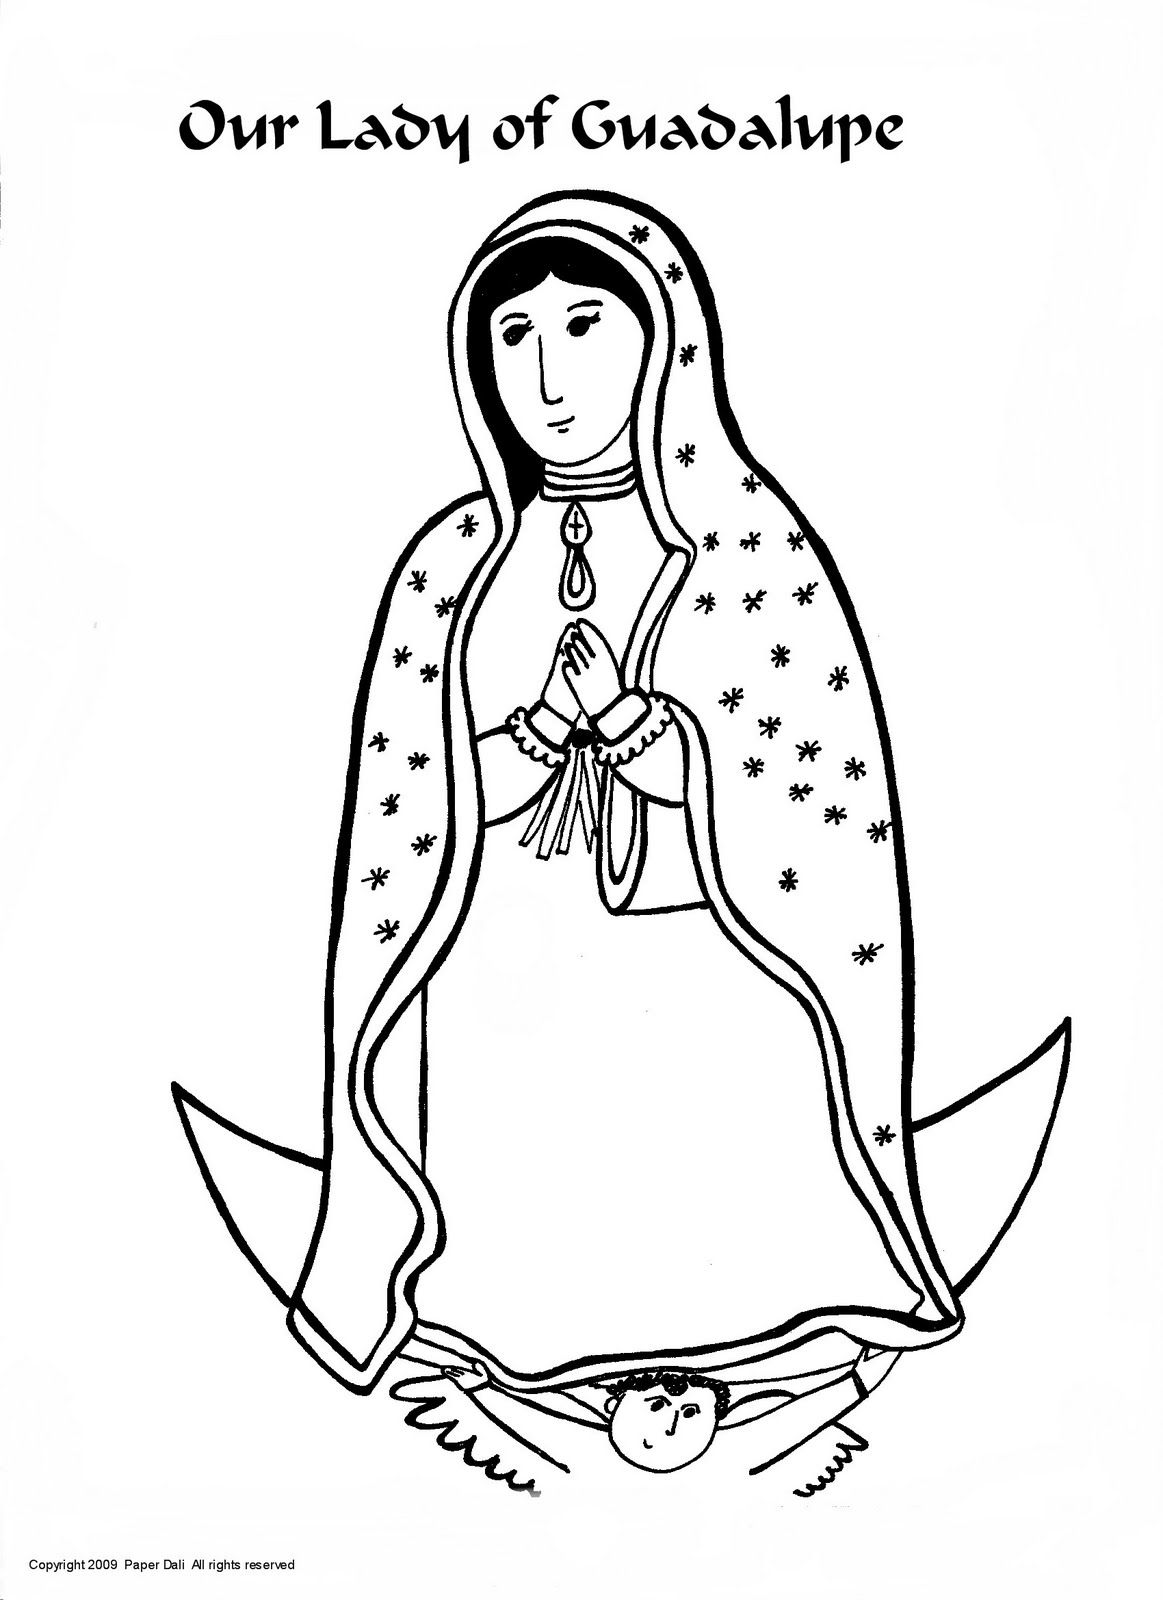 La virgen de guadalupe coloring pages coloring home for Virgen de guadalupe coloring pages